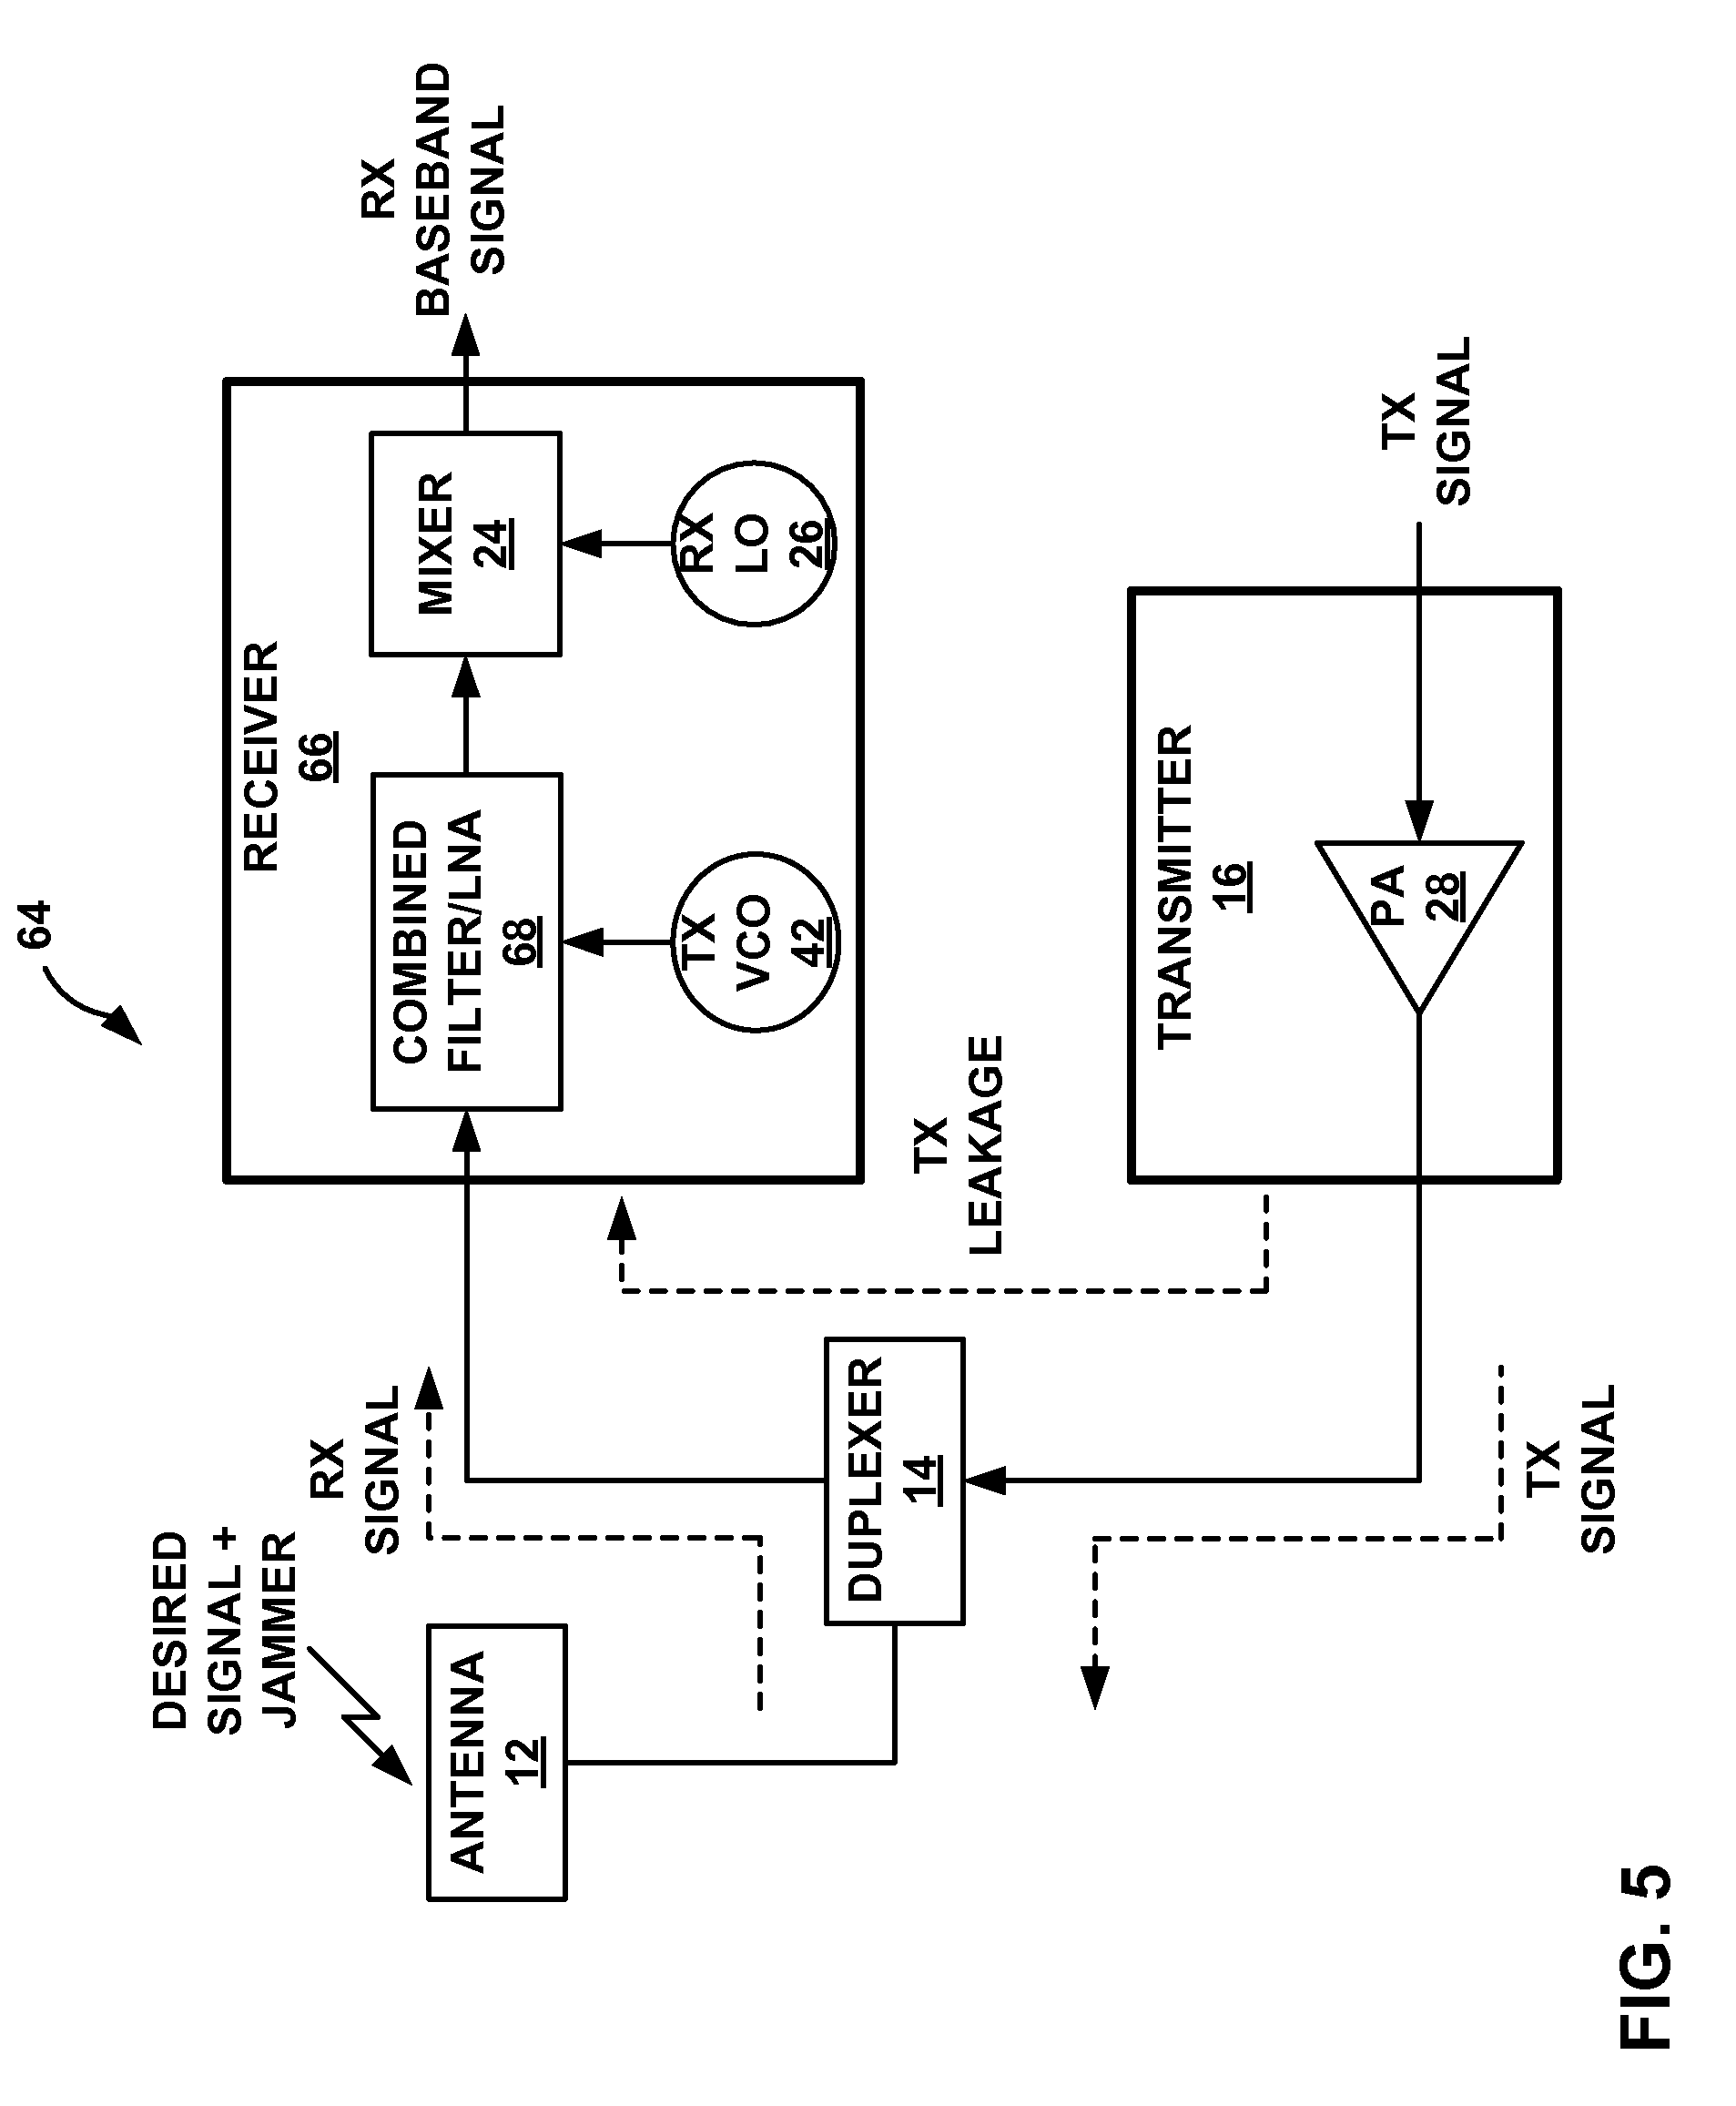 Light Controller Circuit Diagram Tradeoficcom Wiring Online Crystal Oscillator I Electronic Doorbell Heater Control Diagrams Site